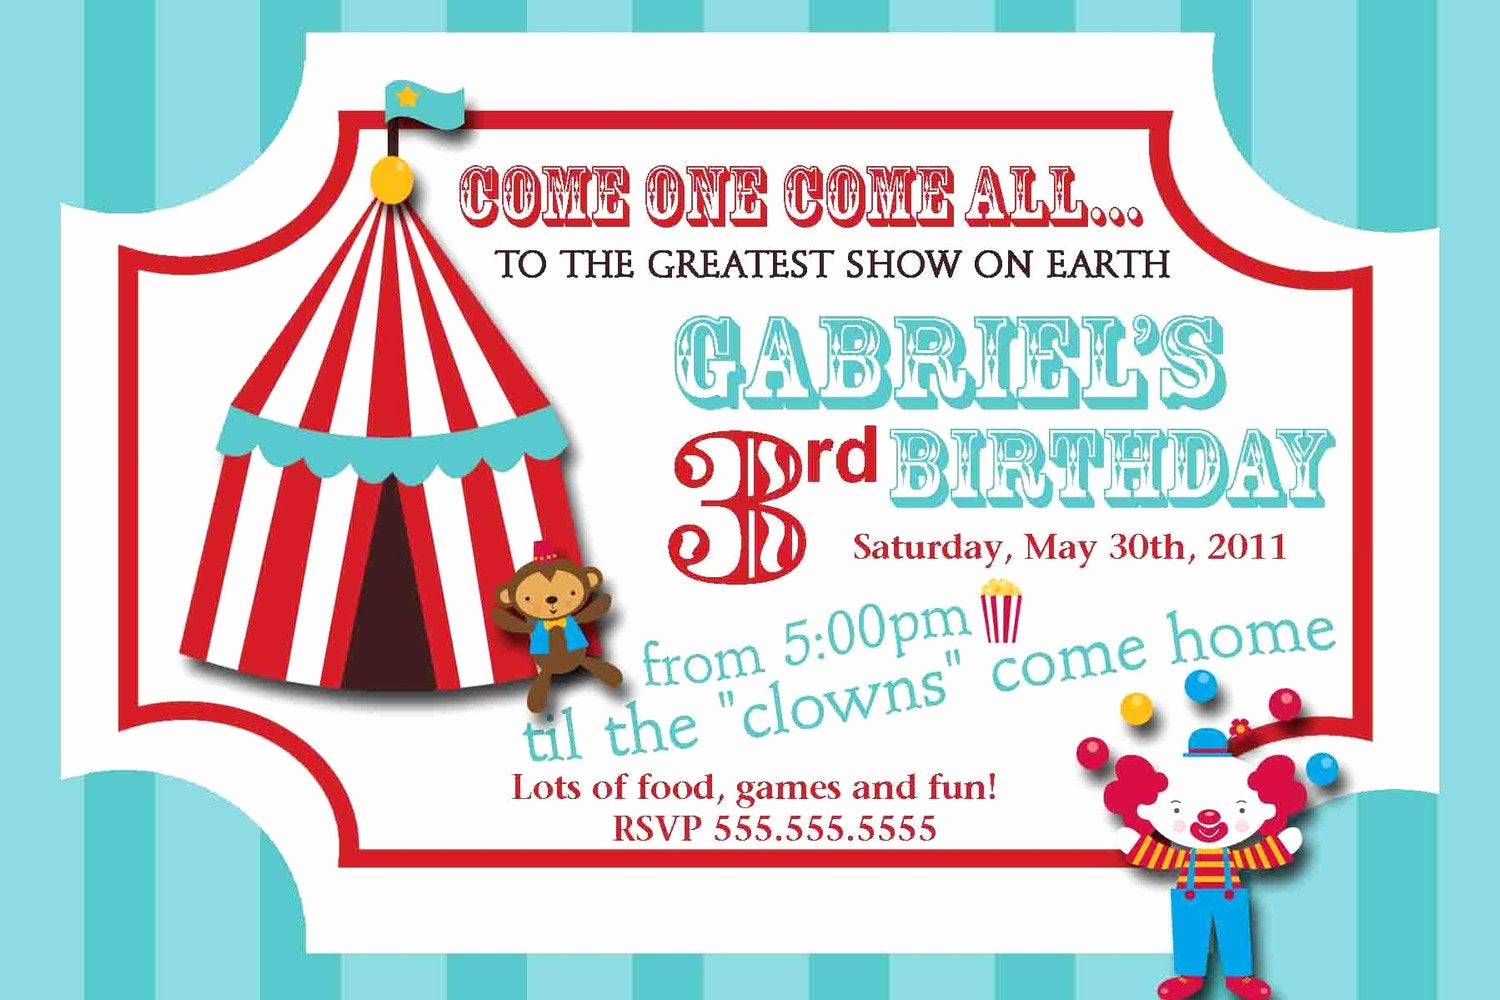 Carnival Ticket Invitation Template Free Elegant Carnival Circus Ticket Birthday Invitation